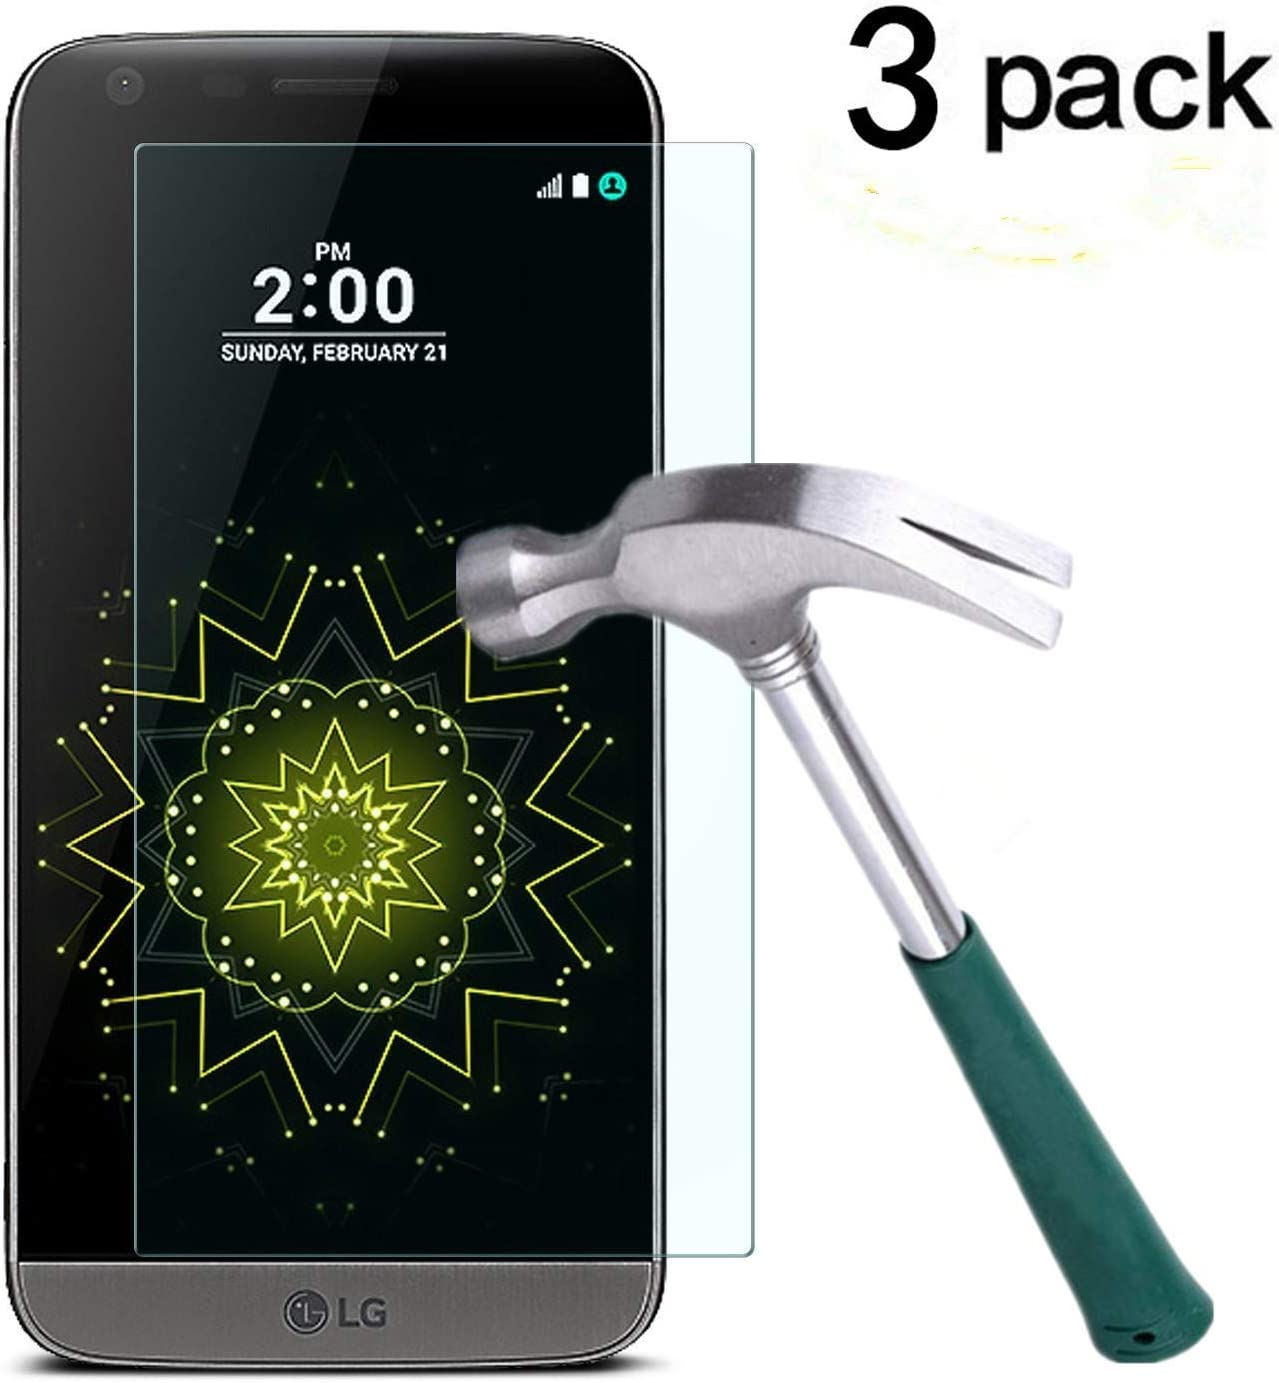 TANTEK 3-Pack High quality Screen Protector for LG G5 2016 free Release in 5.3